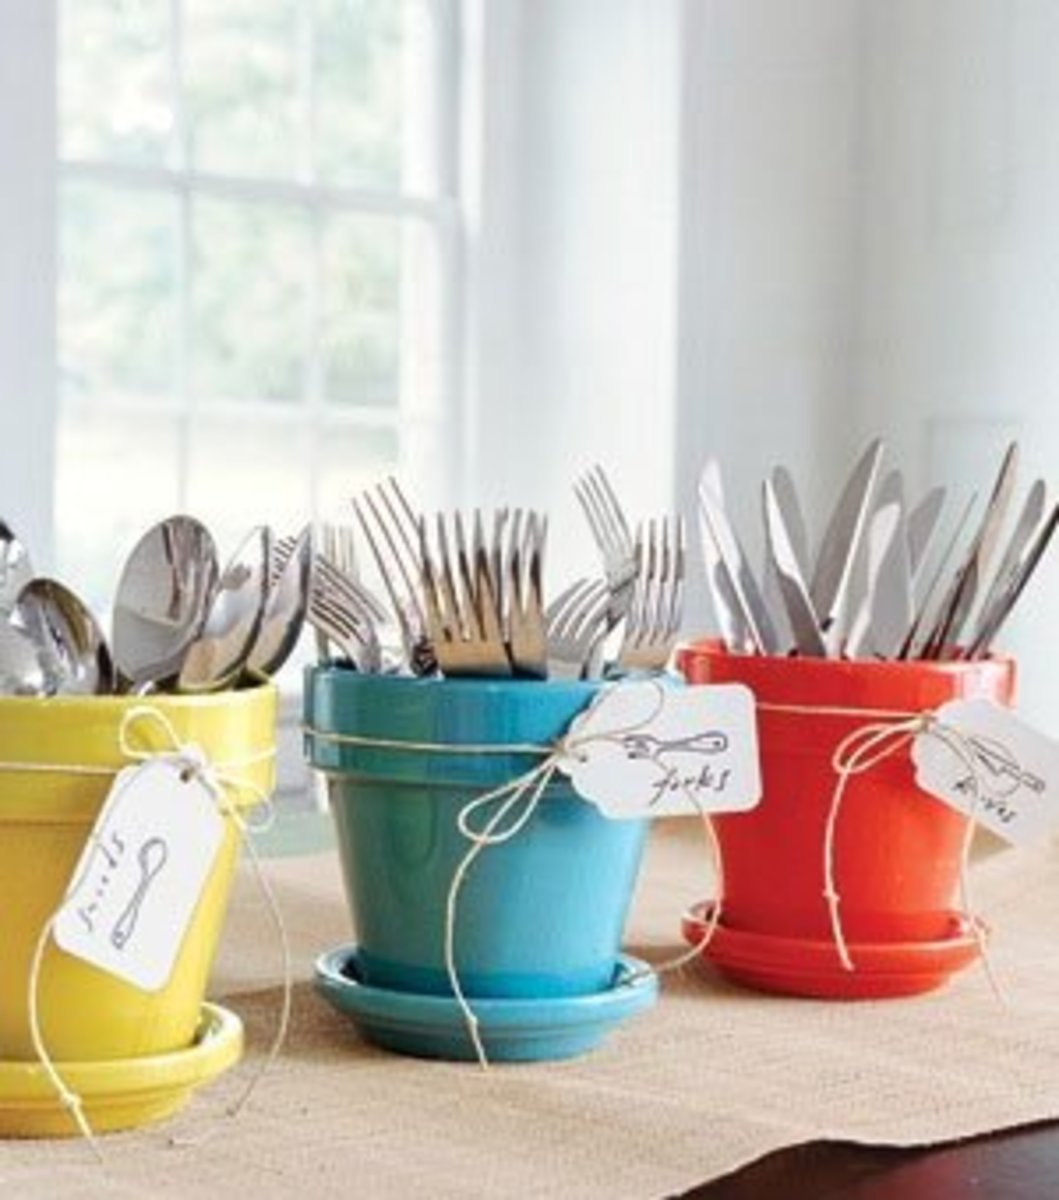 Small Kitchen Organizing Ideas   Click Pic for 20 DIY Kitchen Organization Ideas Use Glossed Pot Holders as Cutlery Holders